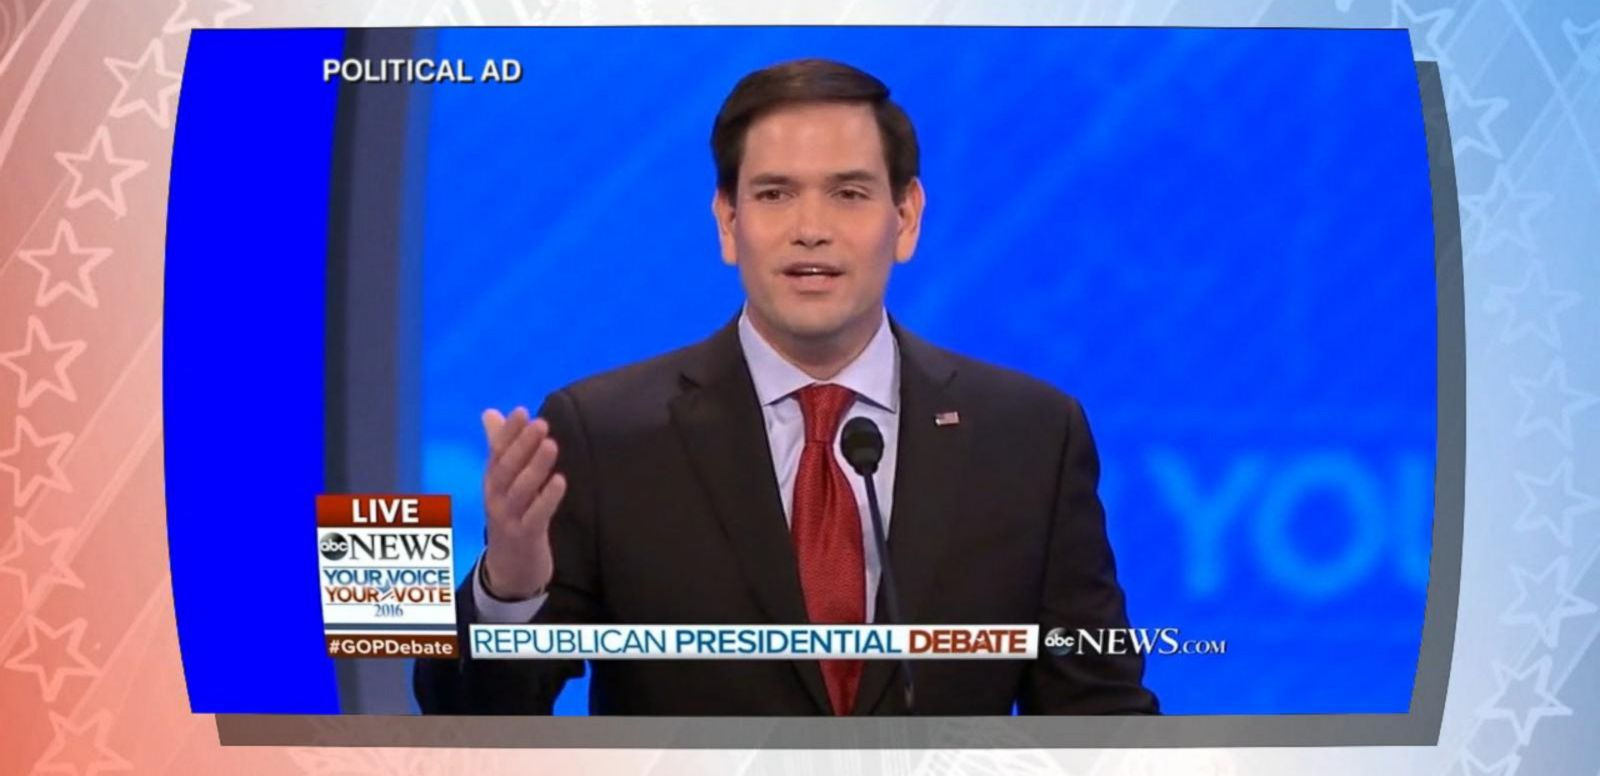 VIDEO: Marco Rubio Faces Fallout From GOP Debate